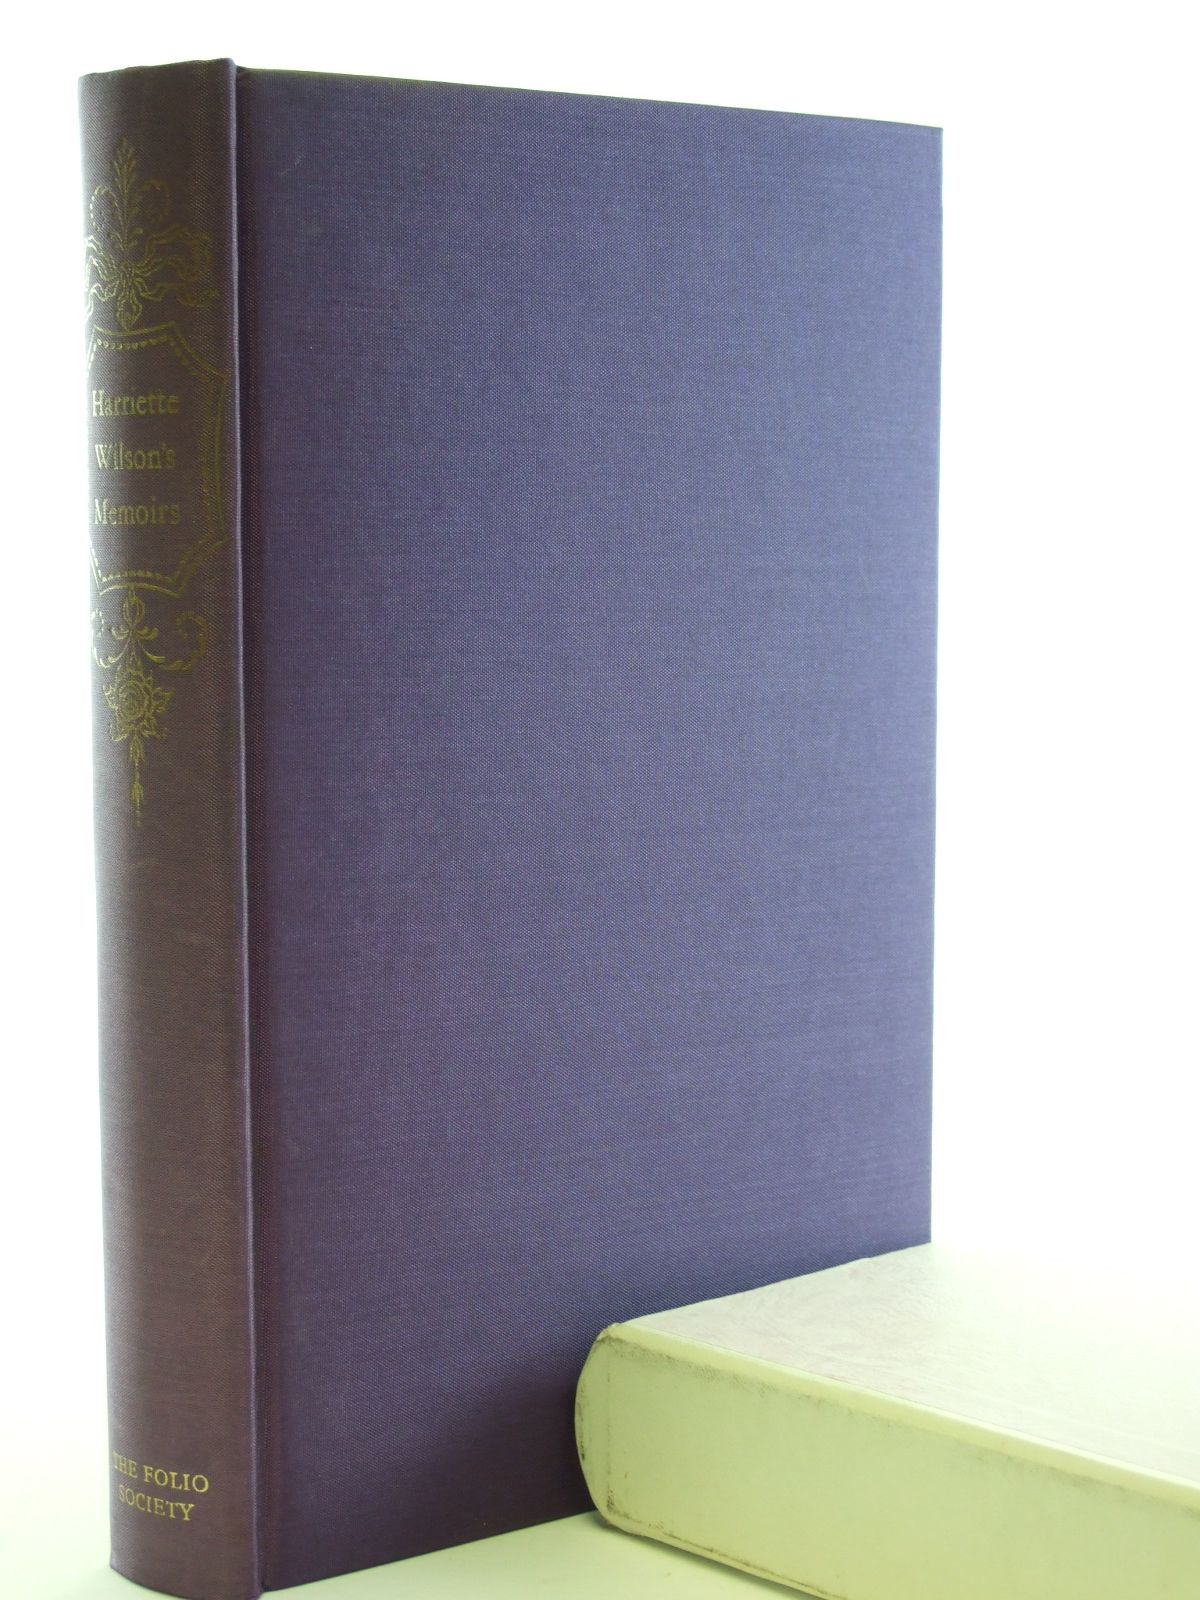 Photo of HARRIETTE WILSON'S MEMOIRS written by Wilson, Harriette published by Folio Society (STOCK CODE: 1602596)  for sale by Stella & Rose's Books